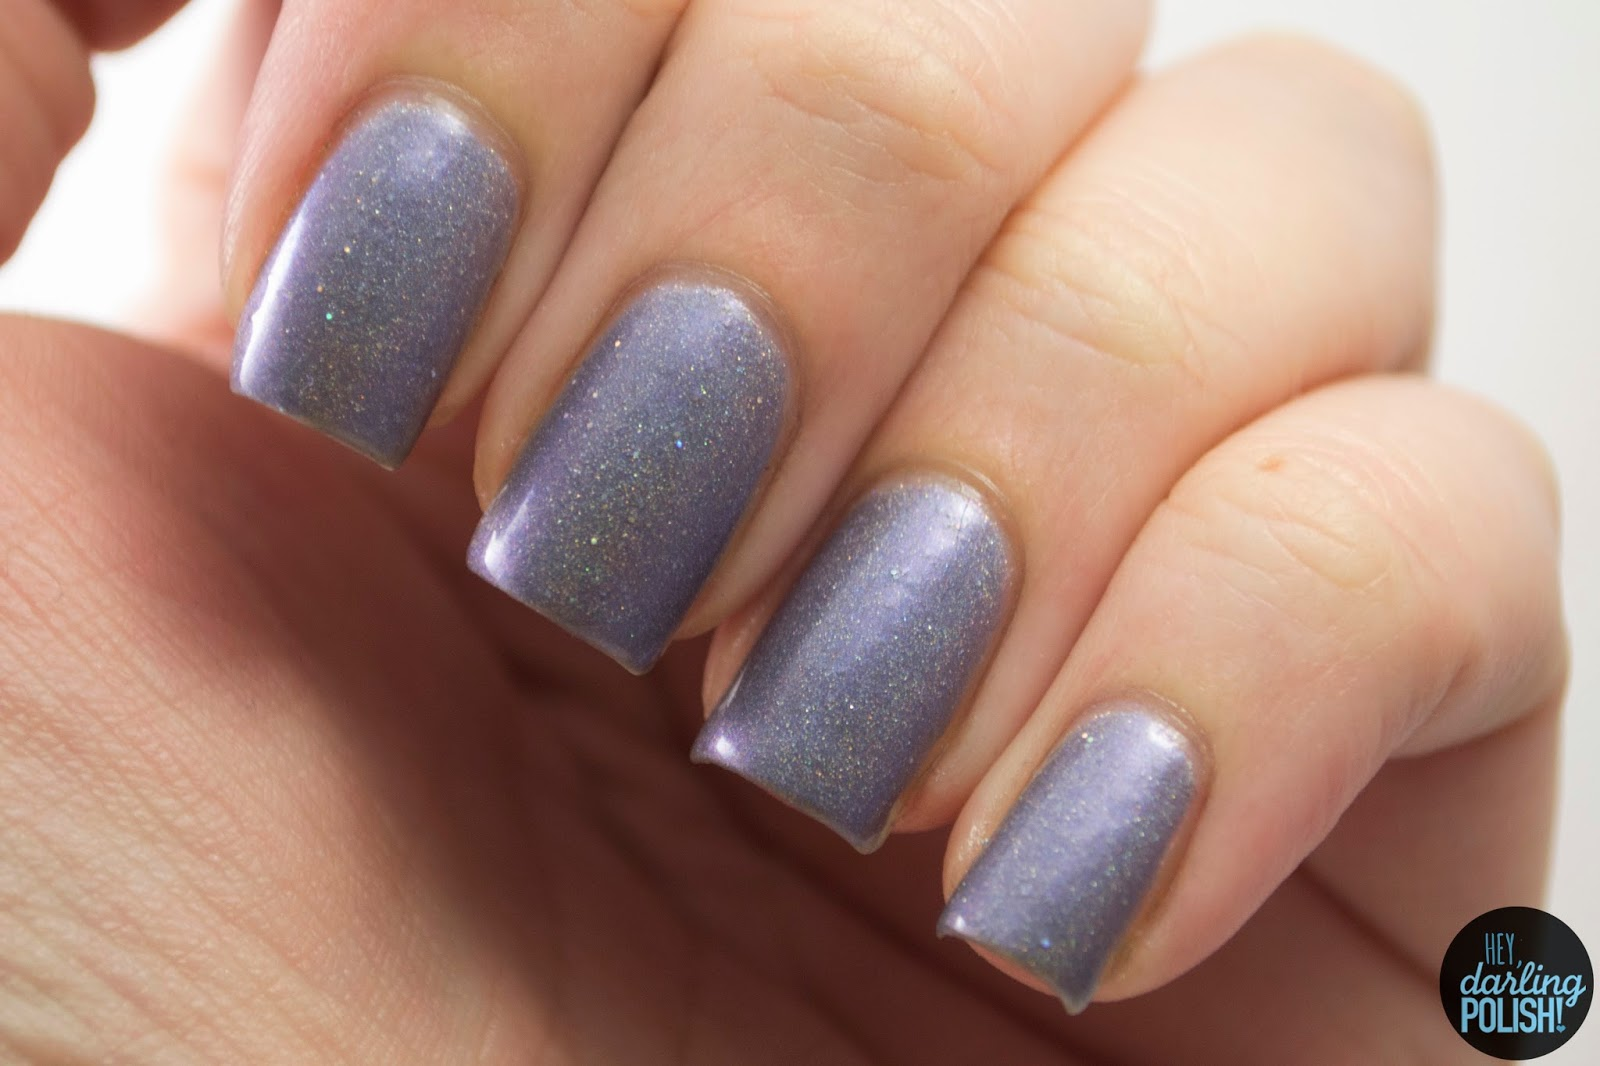 purple, holo, far far away, nails, nail polish, polish, indie, indie polish, indie nail polish, review, swatches, squishy face polish, spring collection